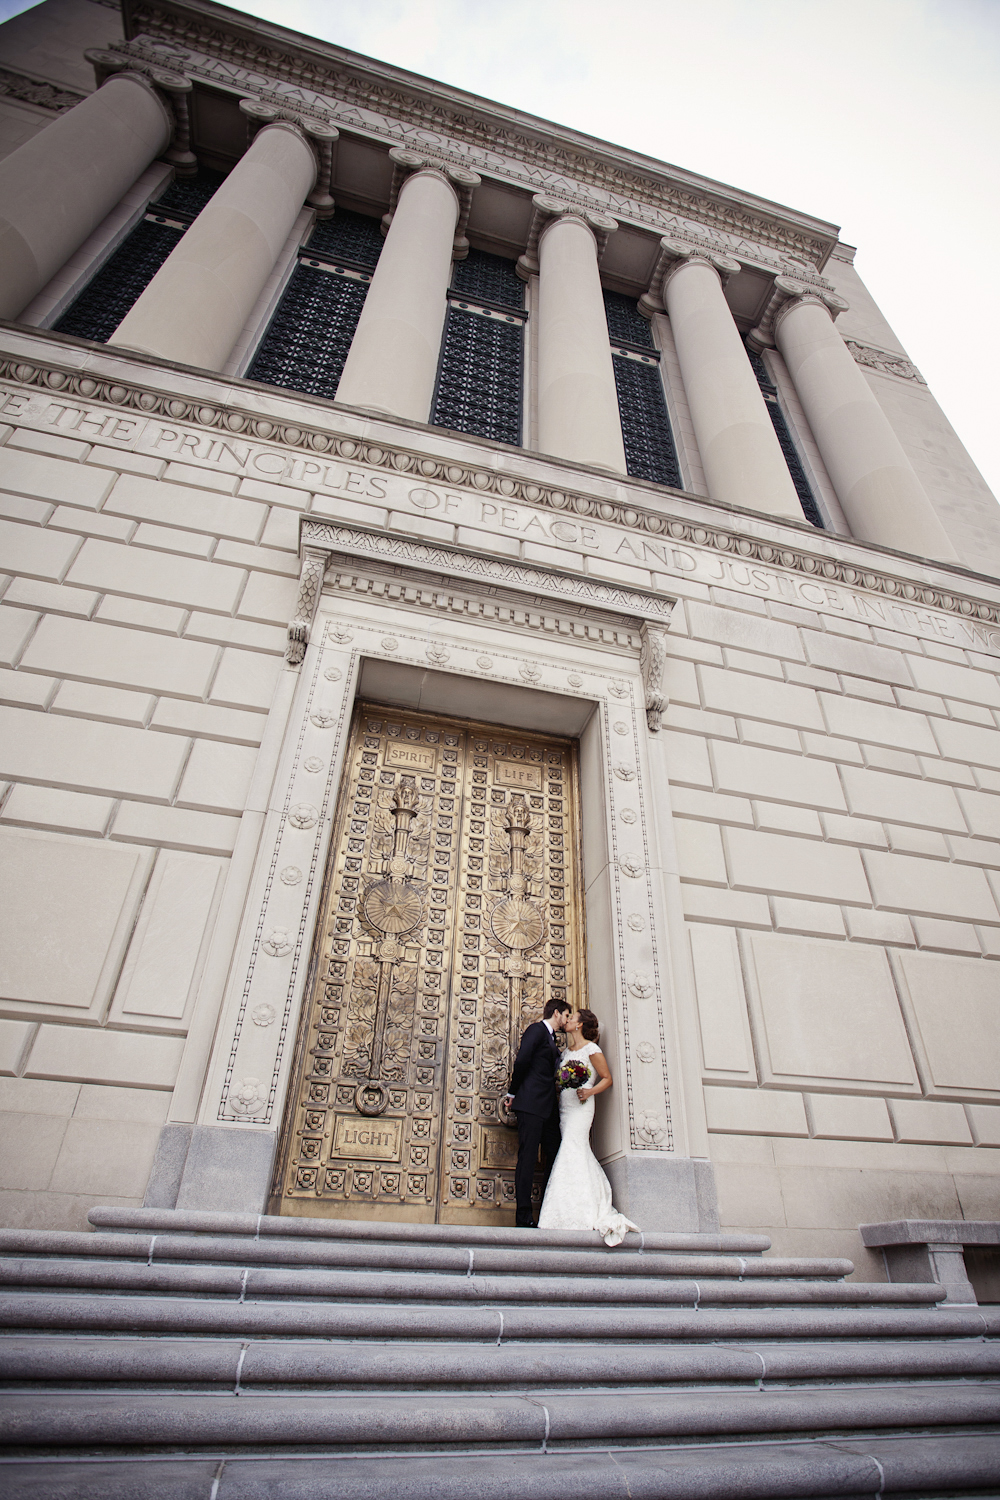 Indianapolis-Indiana-War-Memorial-Wedding-Photographer-Crowes-Eye-Photography-Bride-Groom-Ceremony-2624.jpg